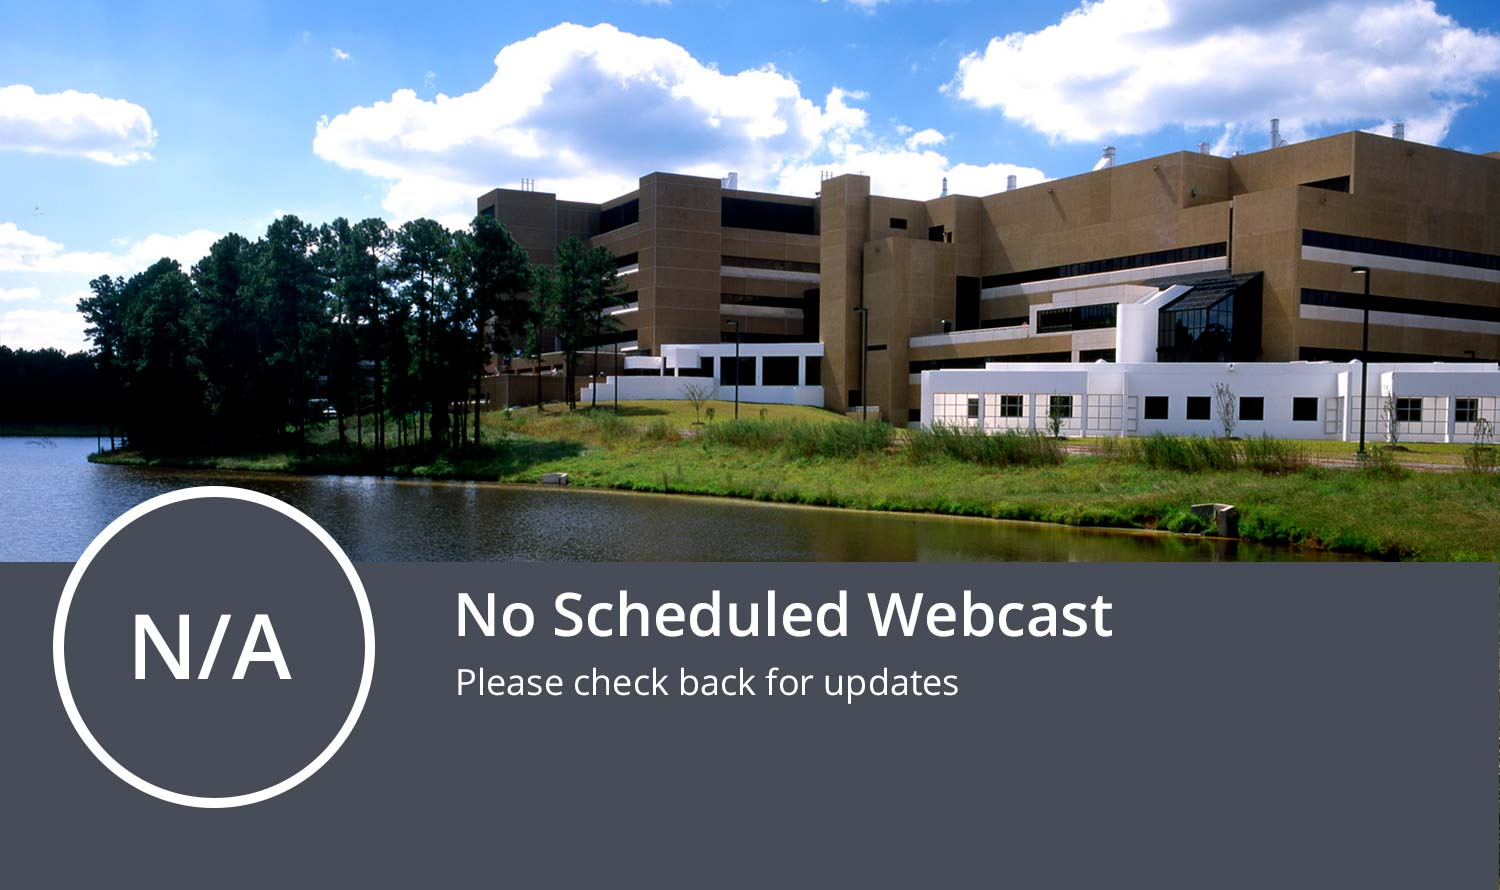 No Scheduled Webcast, please check back for updates